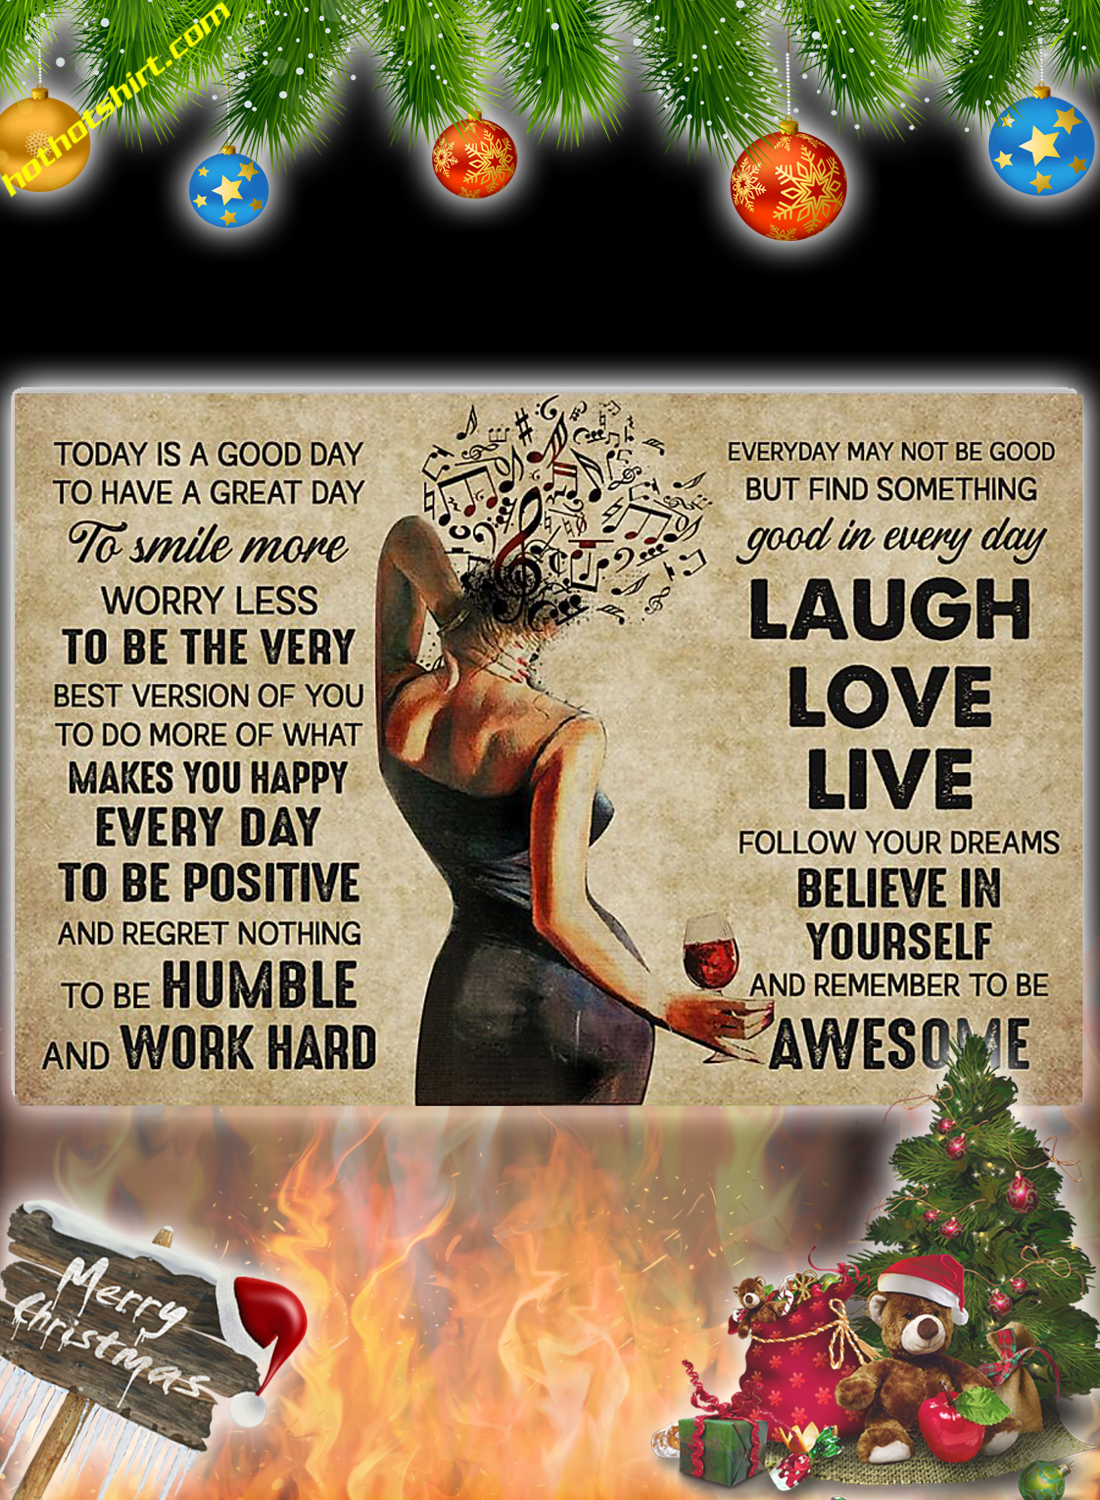 Music wine girl Today is a good day poster 3